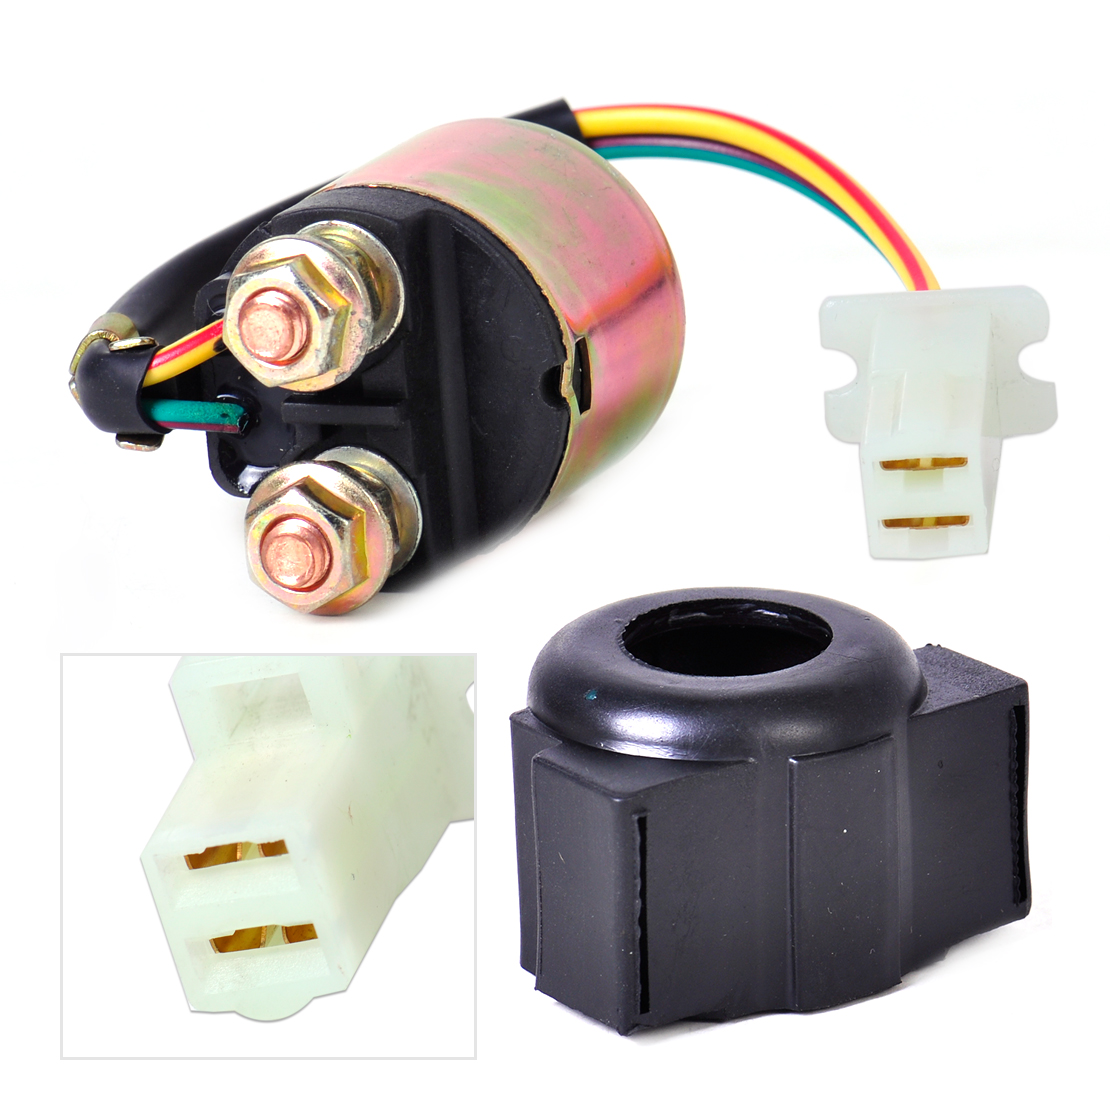 Two Wire Solenoid Trusted Wiring Diagram Motorcycle Starter Dwcx Motorbike 2 Plug Connection Relay For